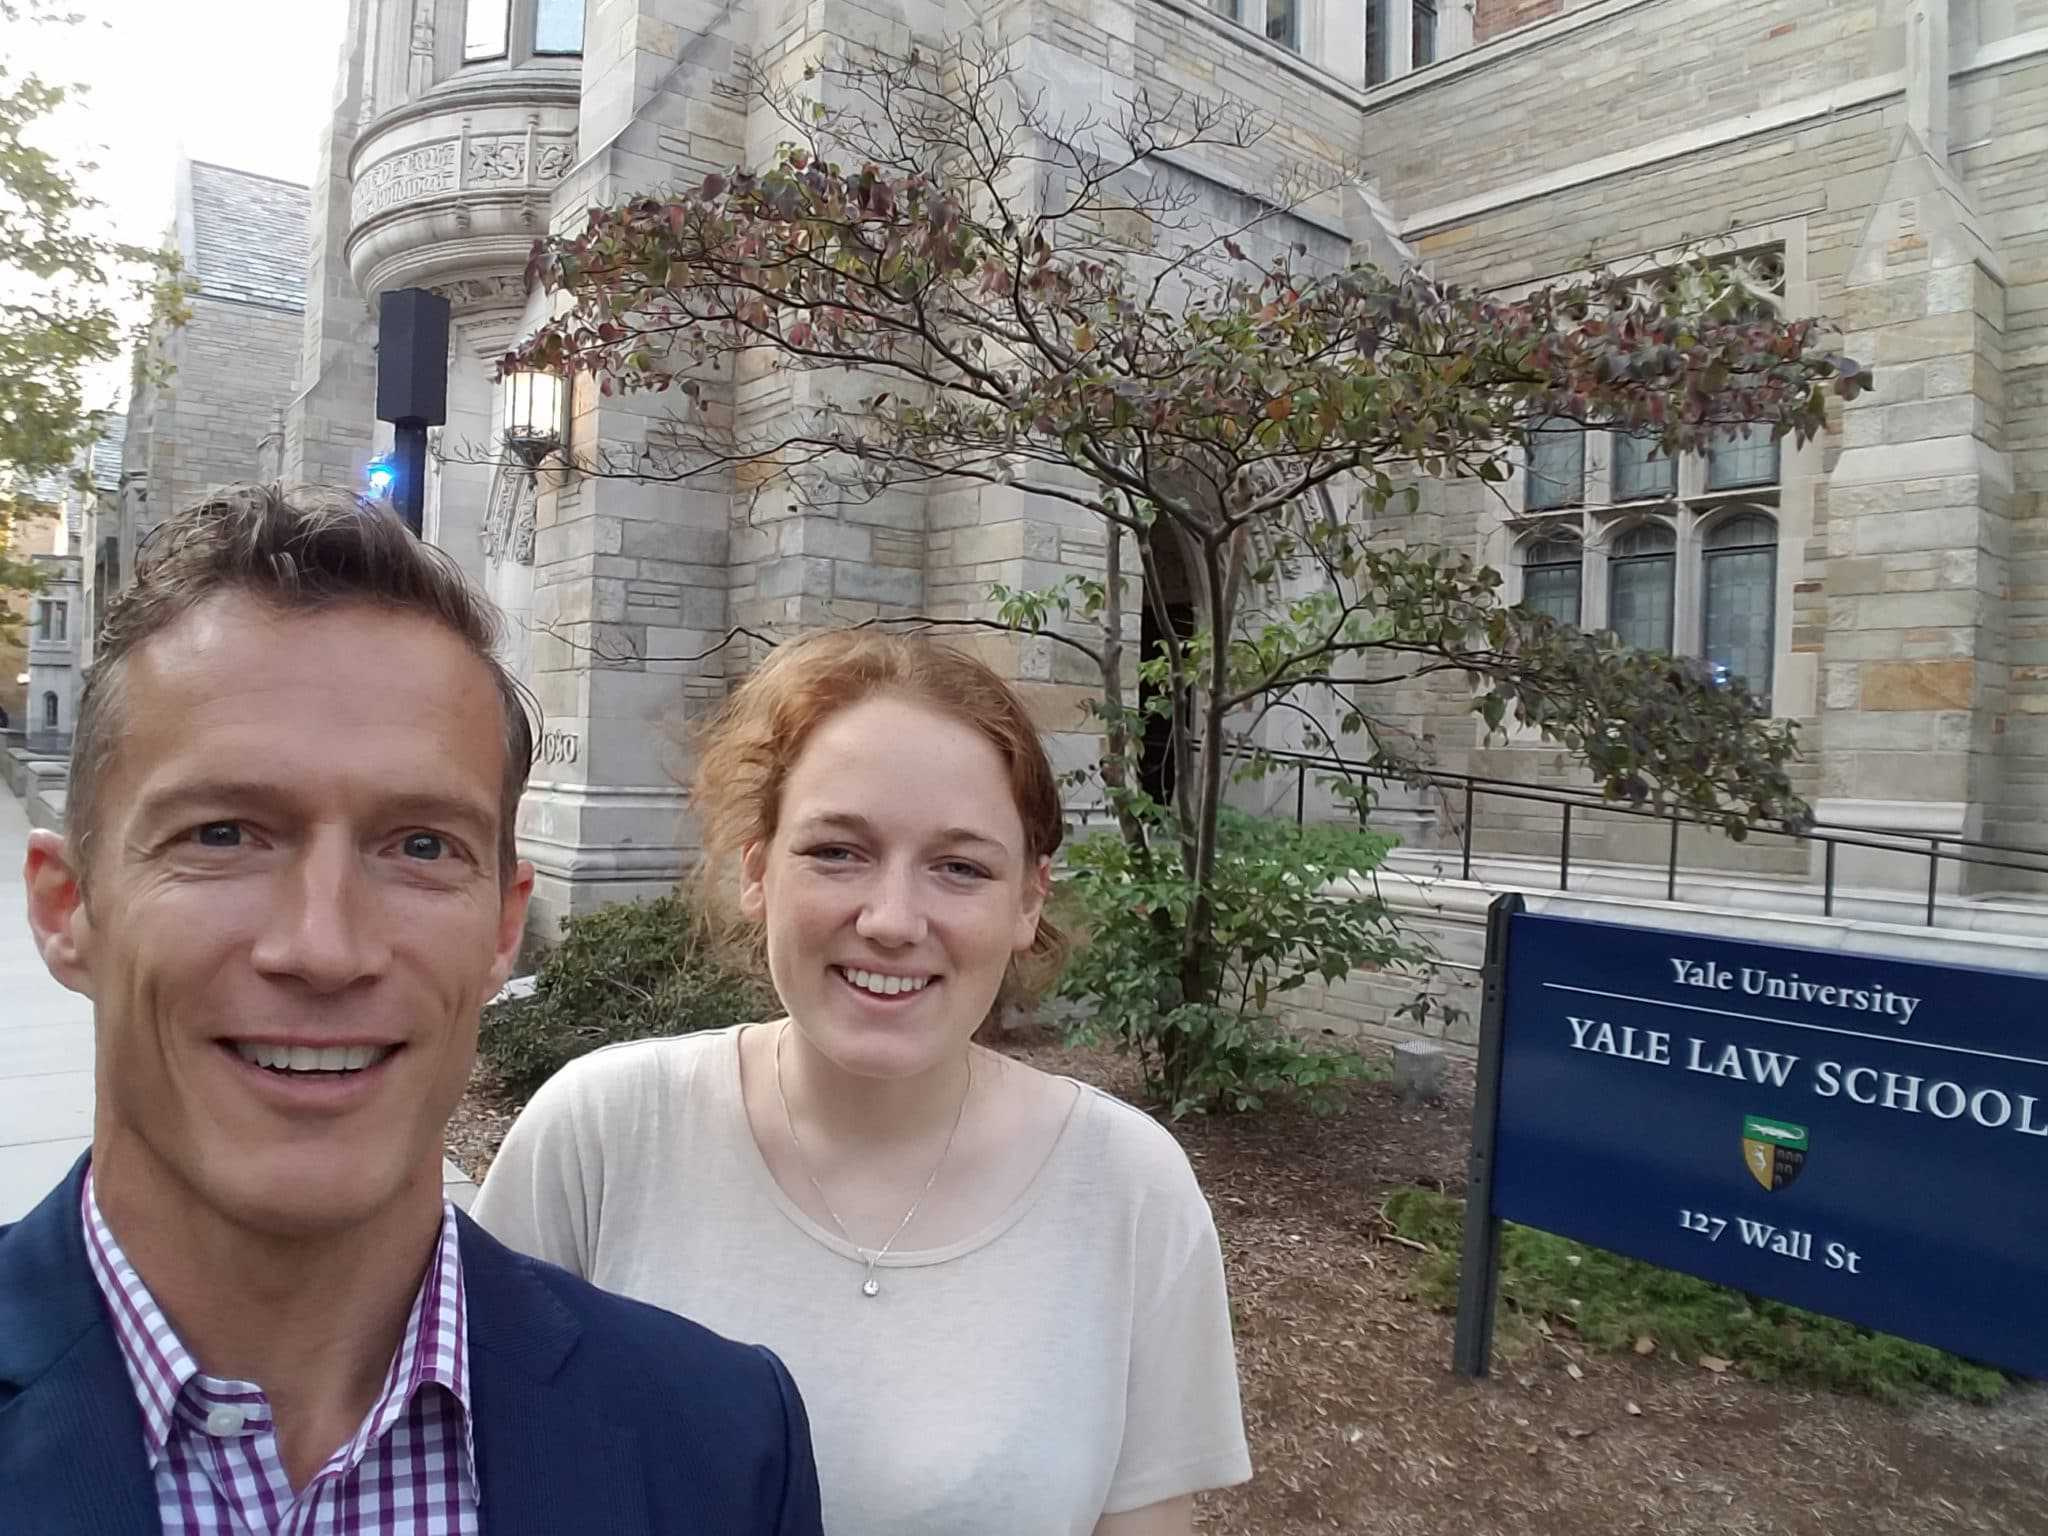 Rich Vaughn at Yale School of Law with Kyle Edwards of Yale Health Law and Policy Society